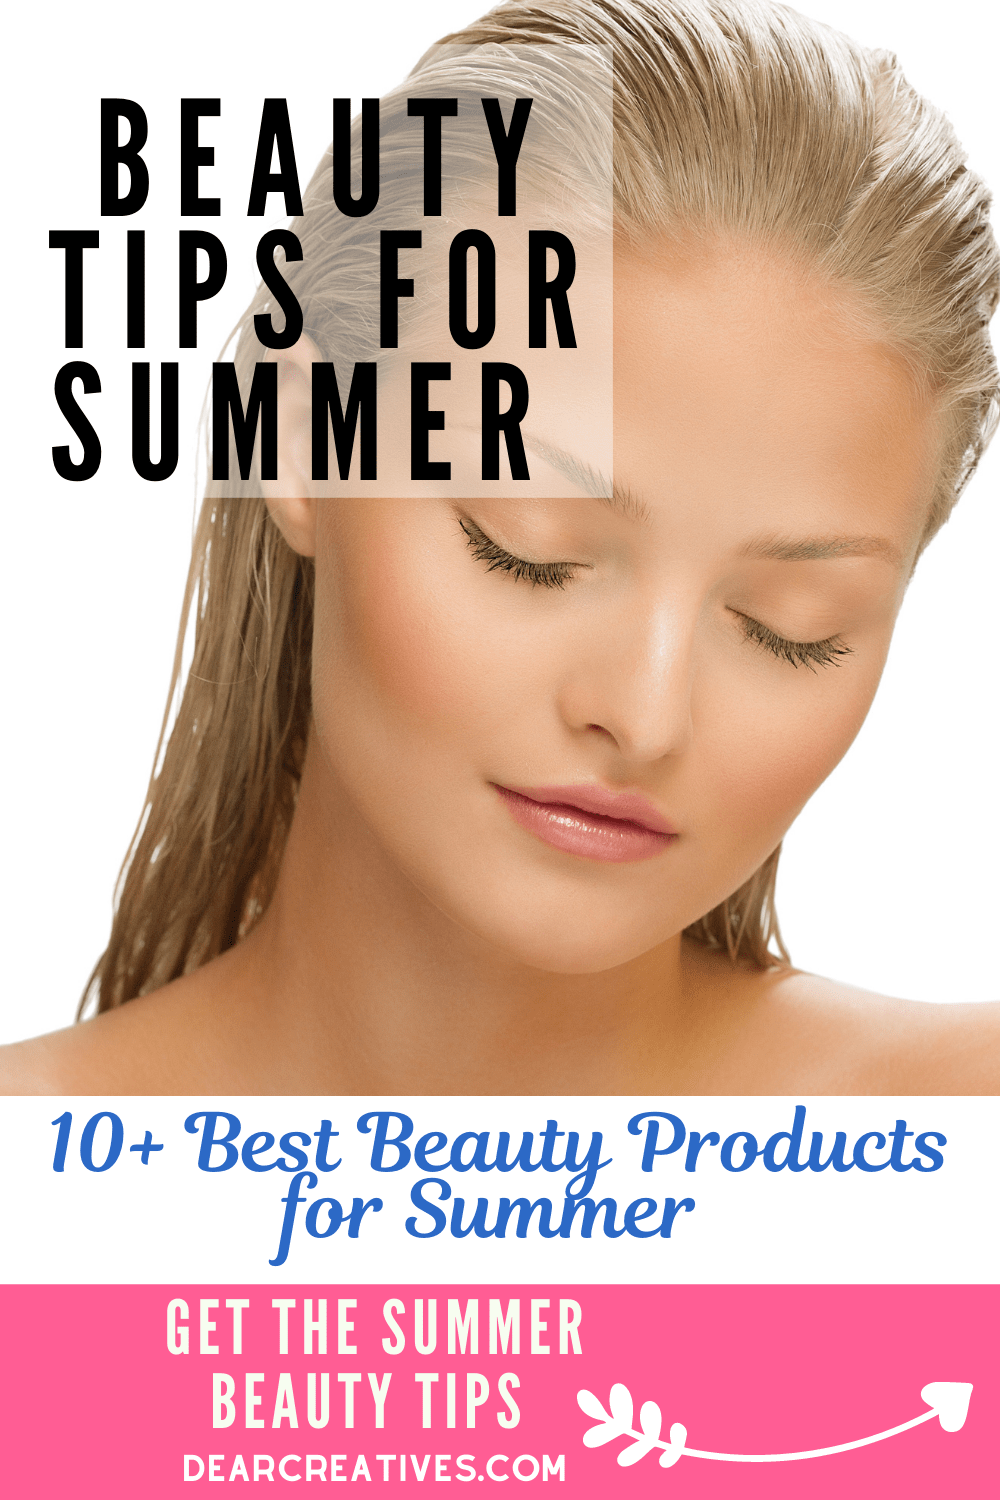 Beauty Tips For Summer +10 Beauty Products